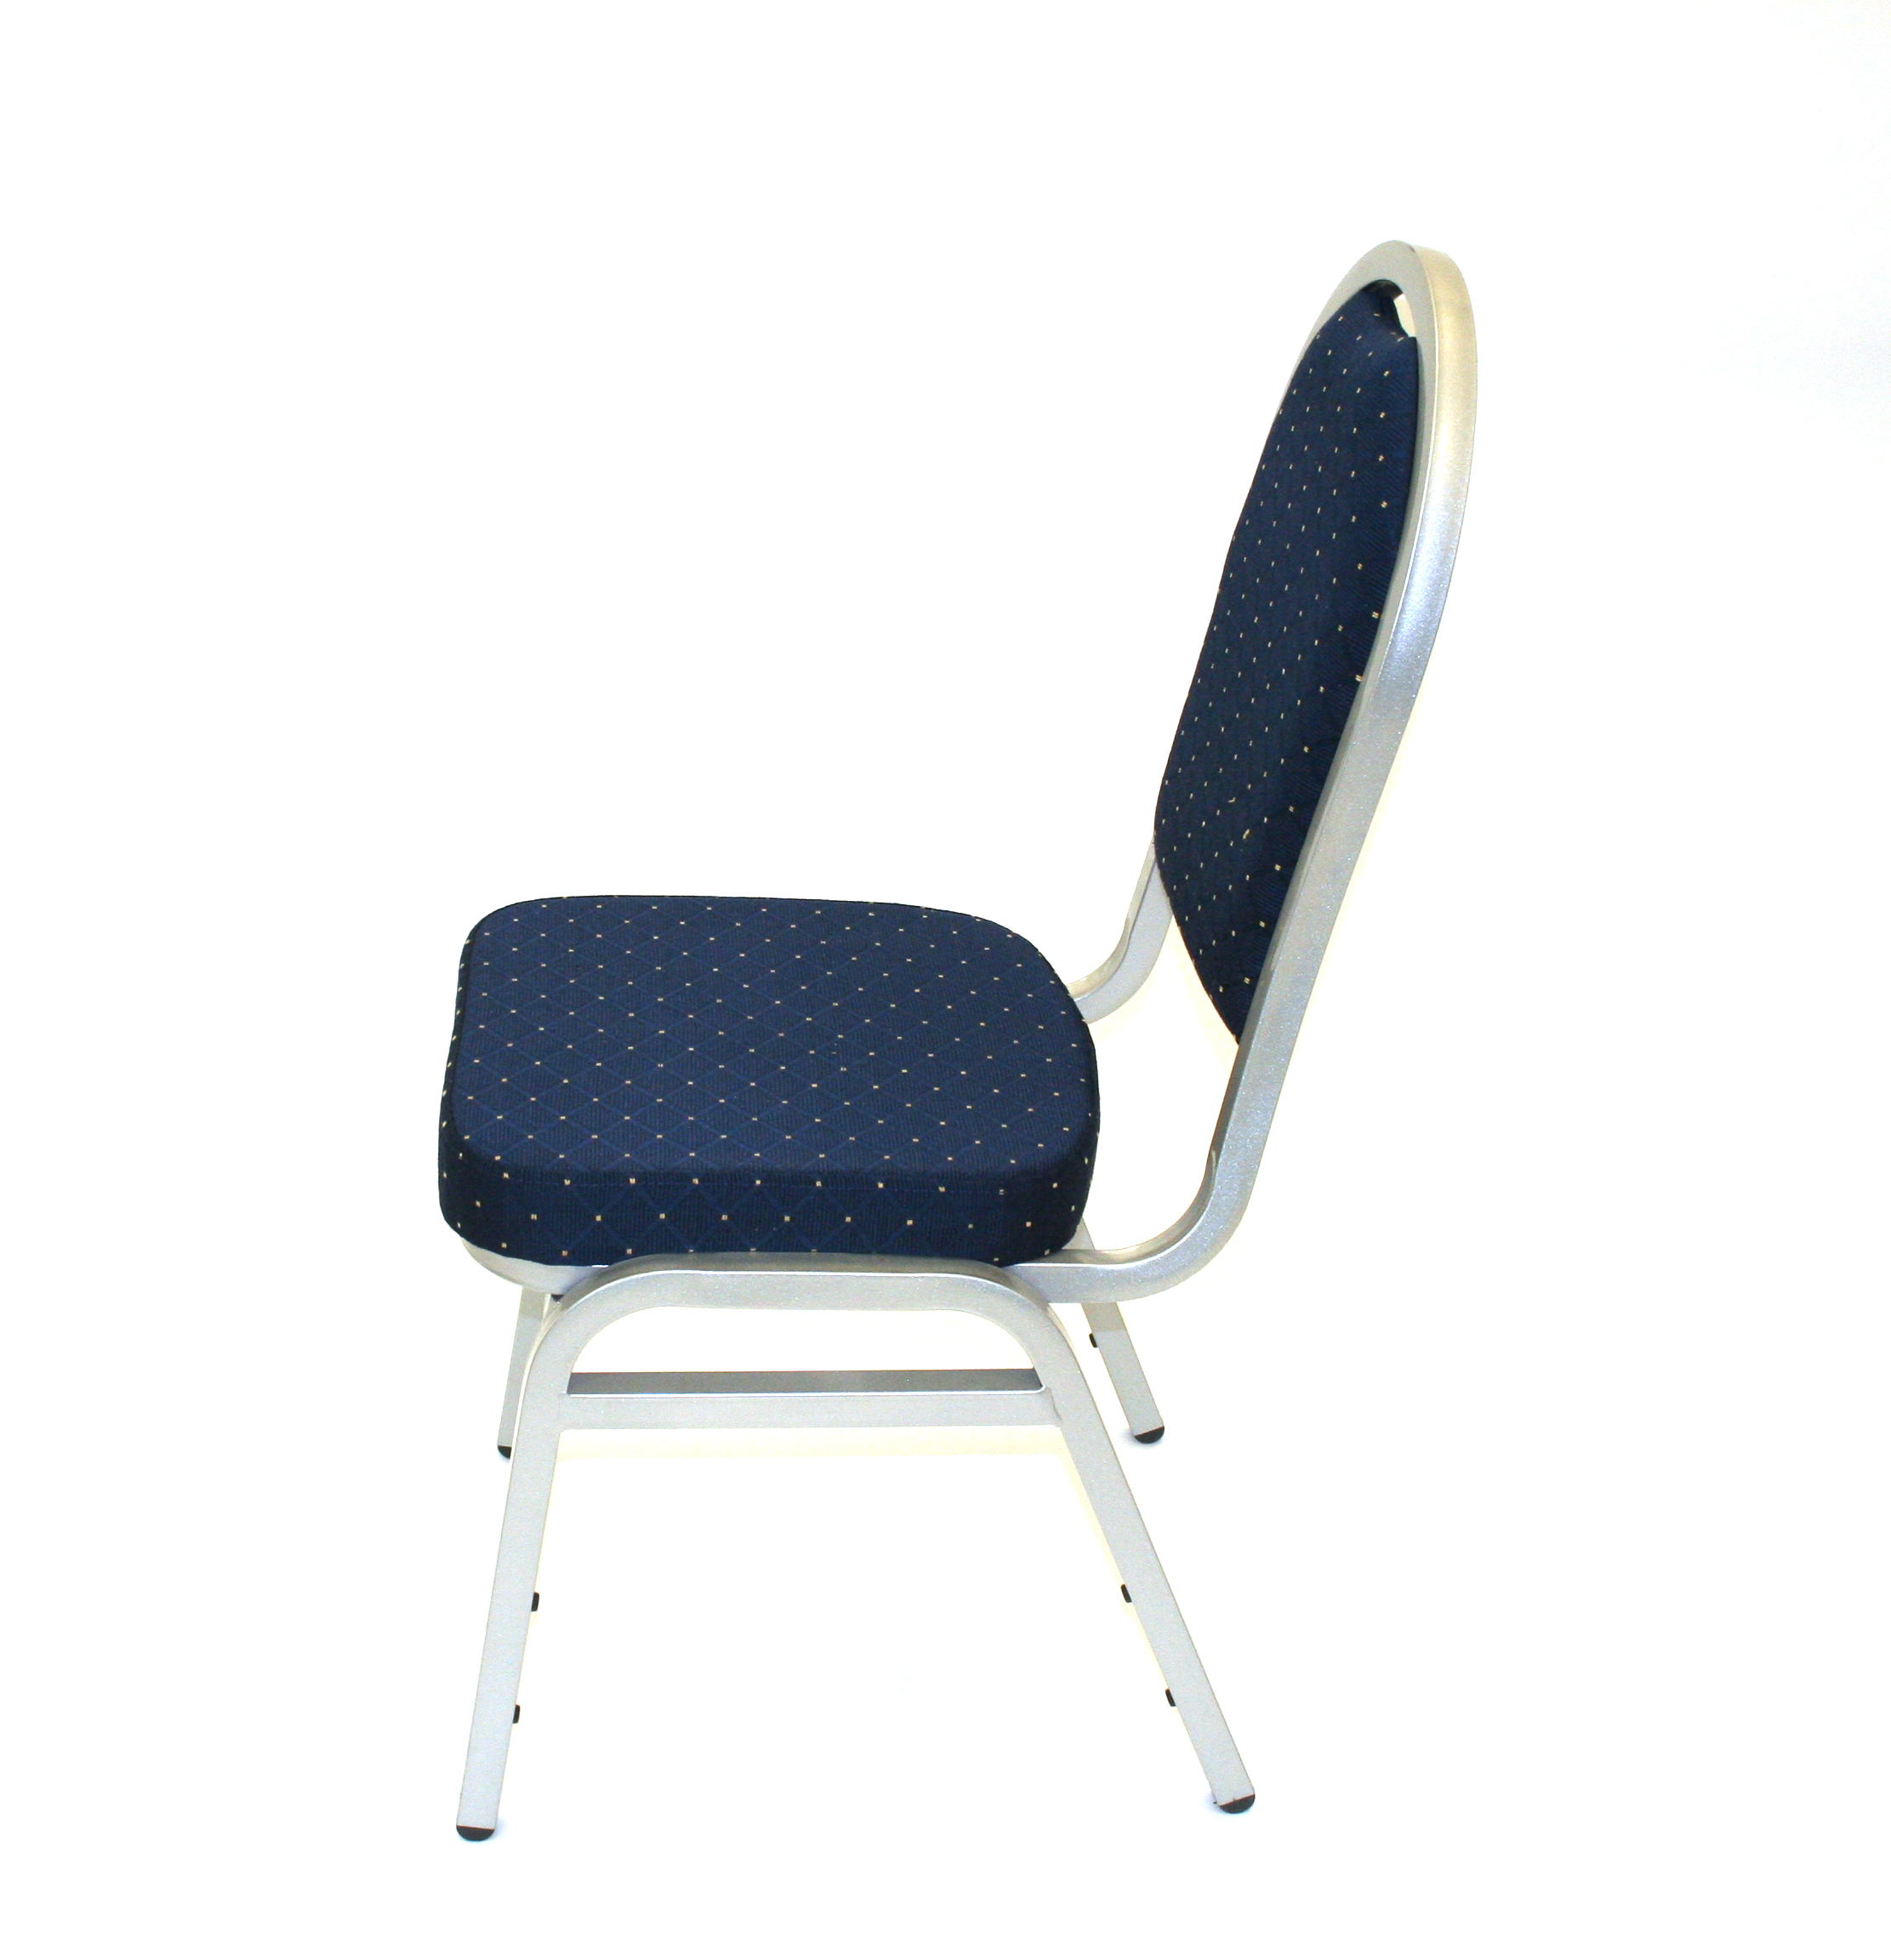 Blue & silver banquet conference chair - BE Event Hire